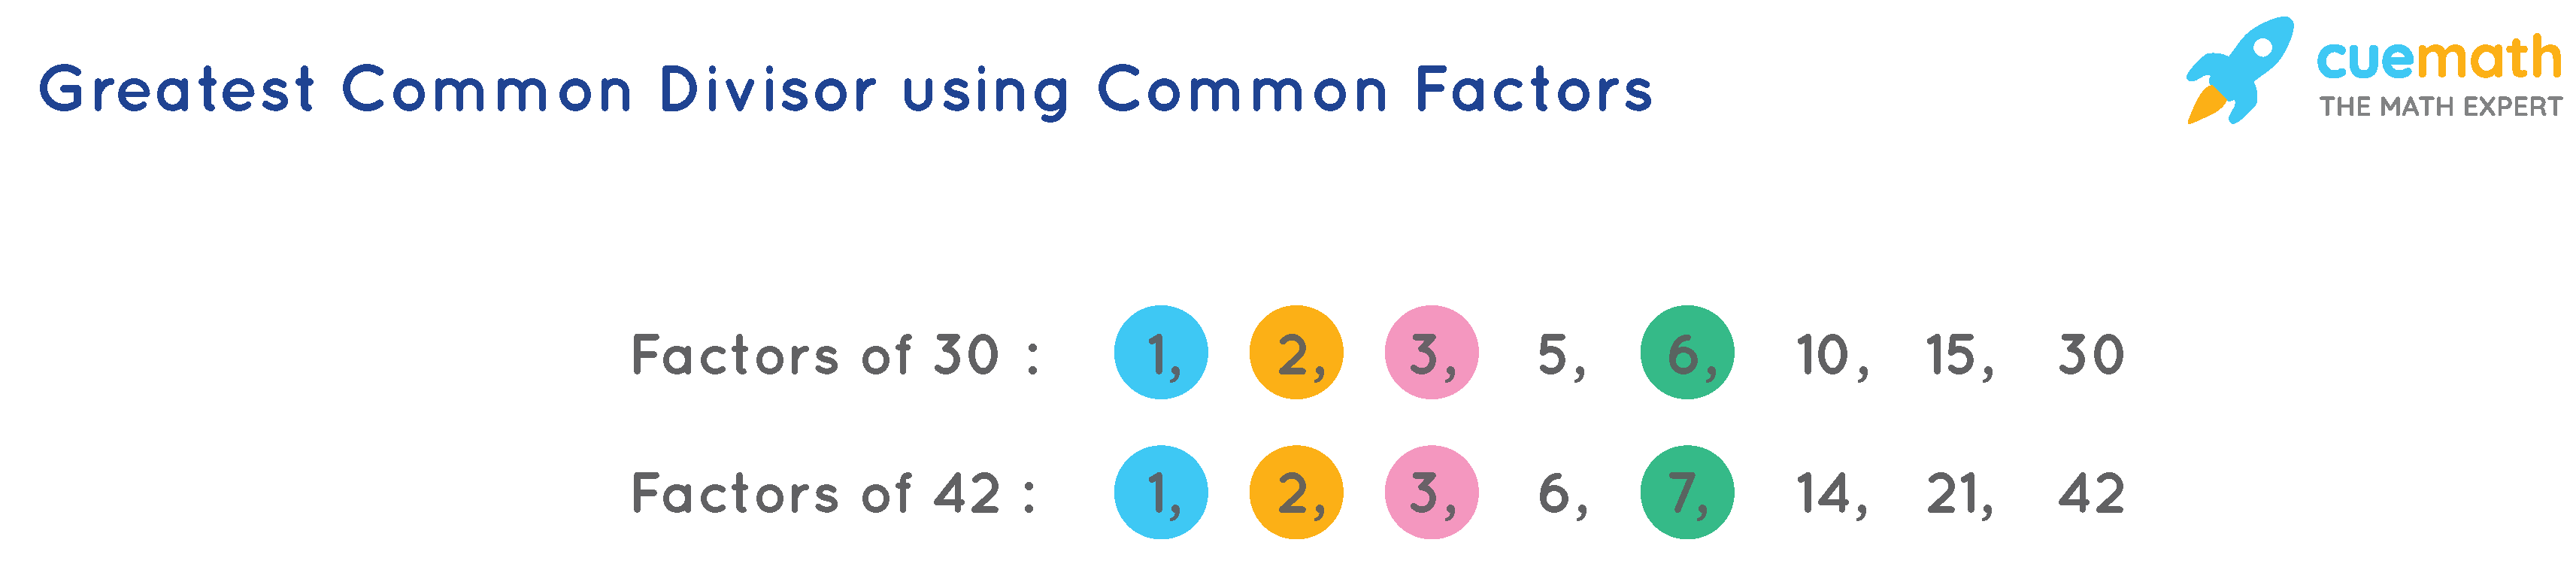 Greatest common divisor using common factors